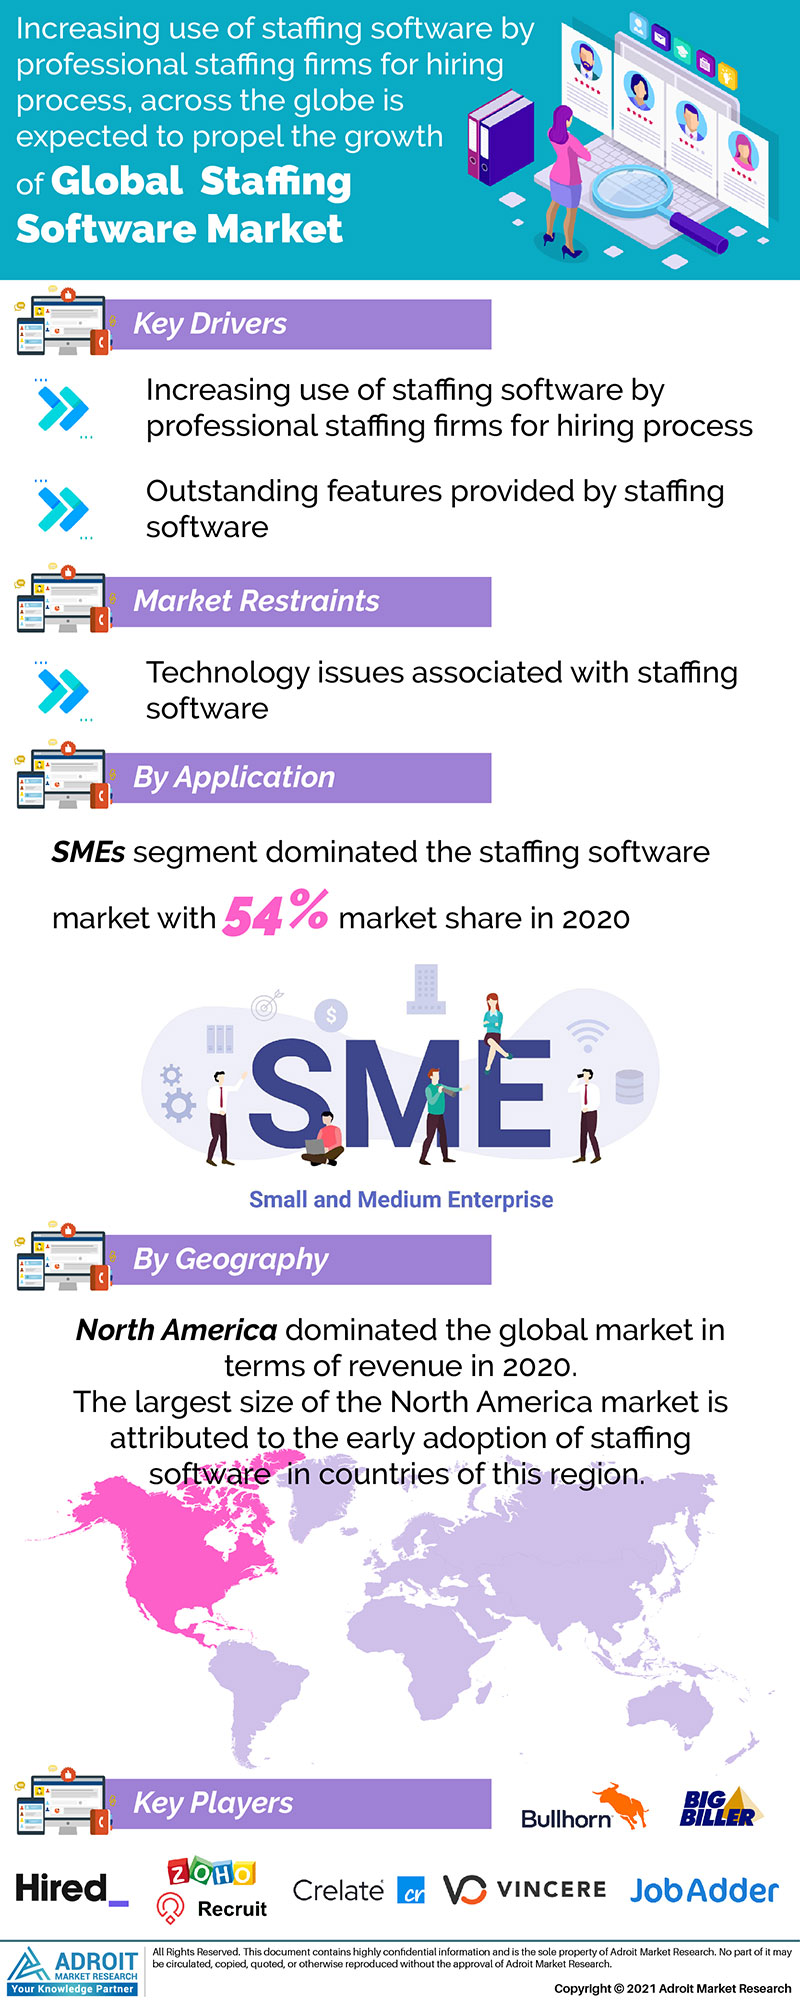 Global Staffing Software Market Size 2020 By Product, Procedure, Region and Forecast 2021 to 2025